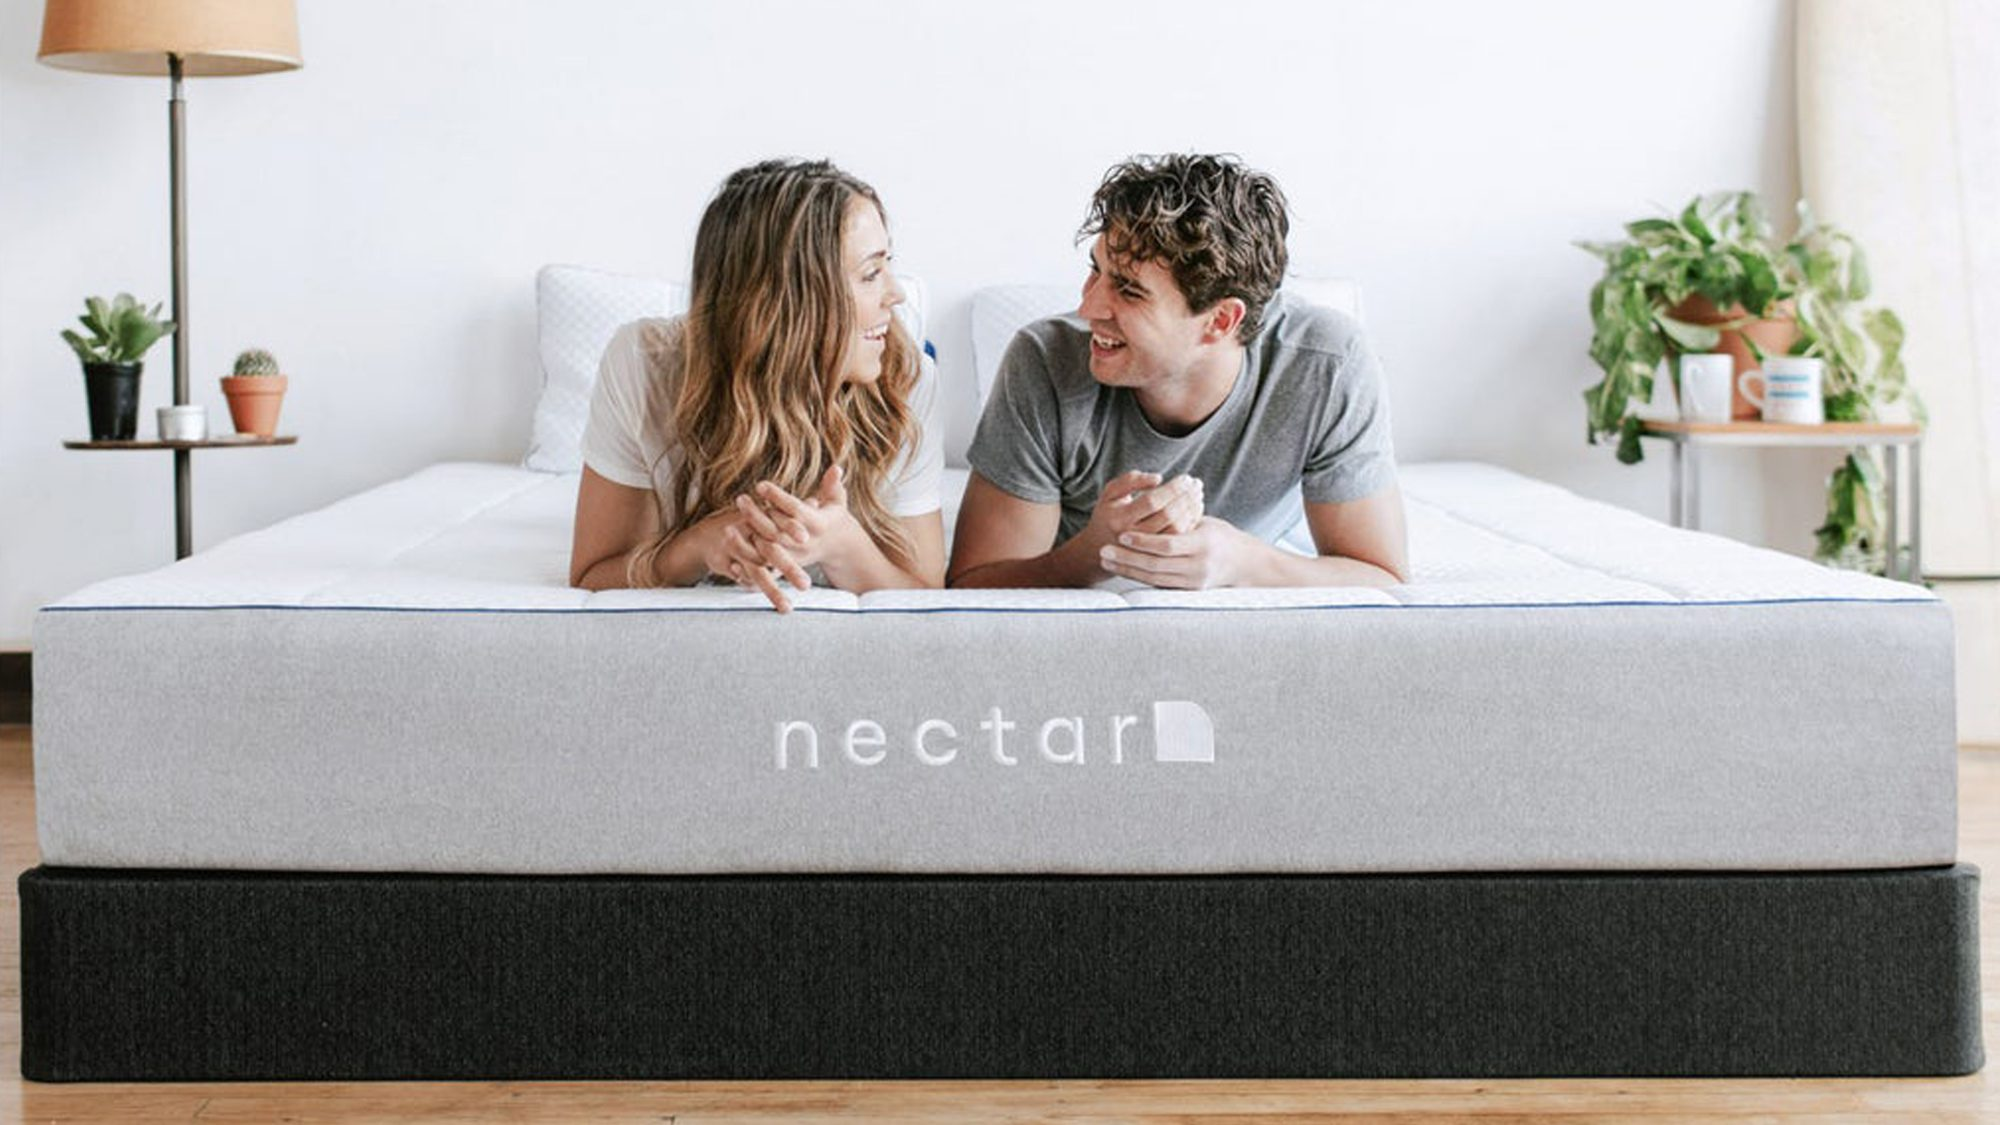 The Nectar Memory Foam Mattress Tout